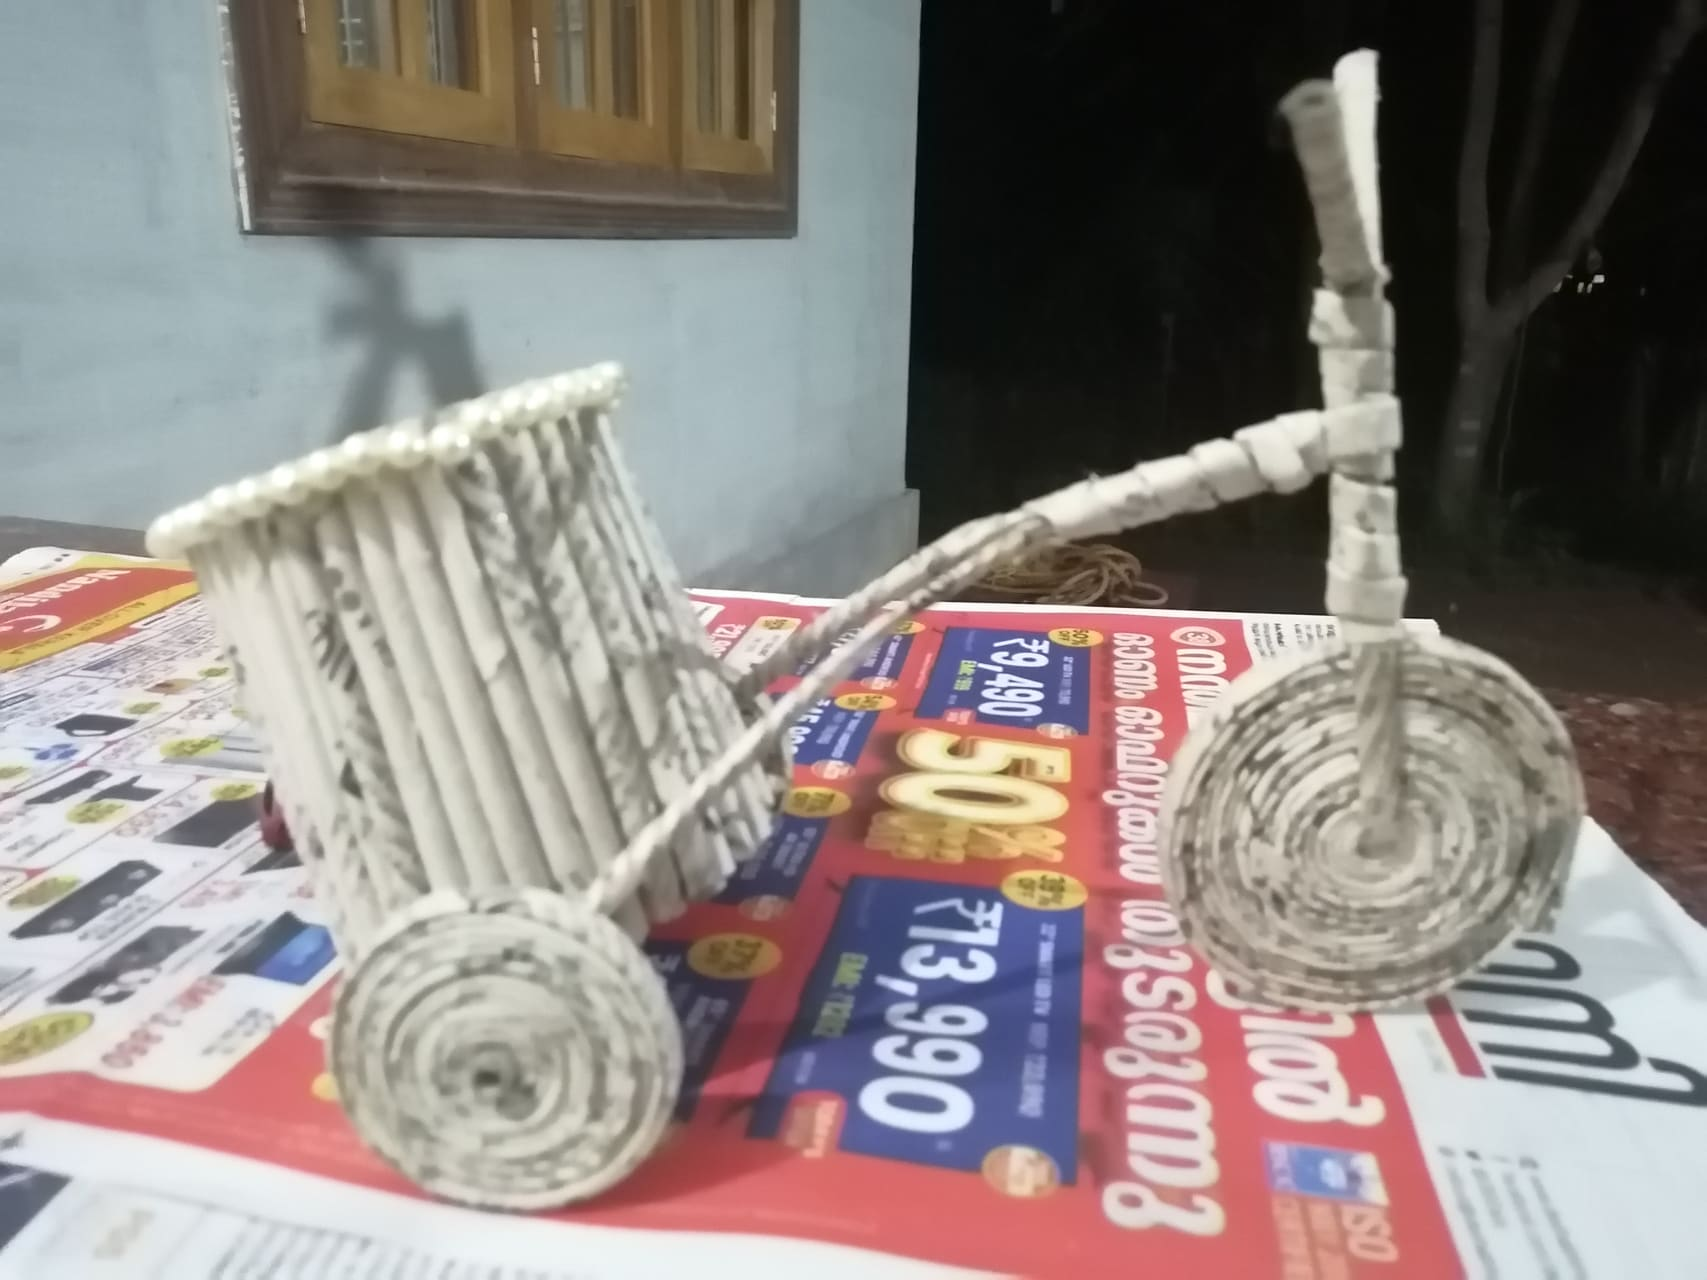 Kerala - Art; Let us Learn to Make a Bicycle With Old Newspapers